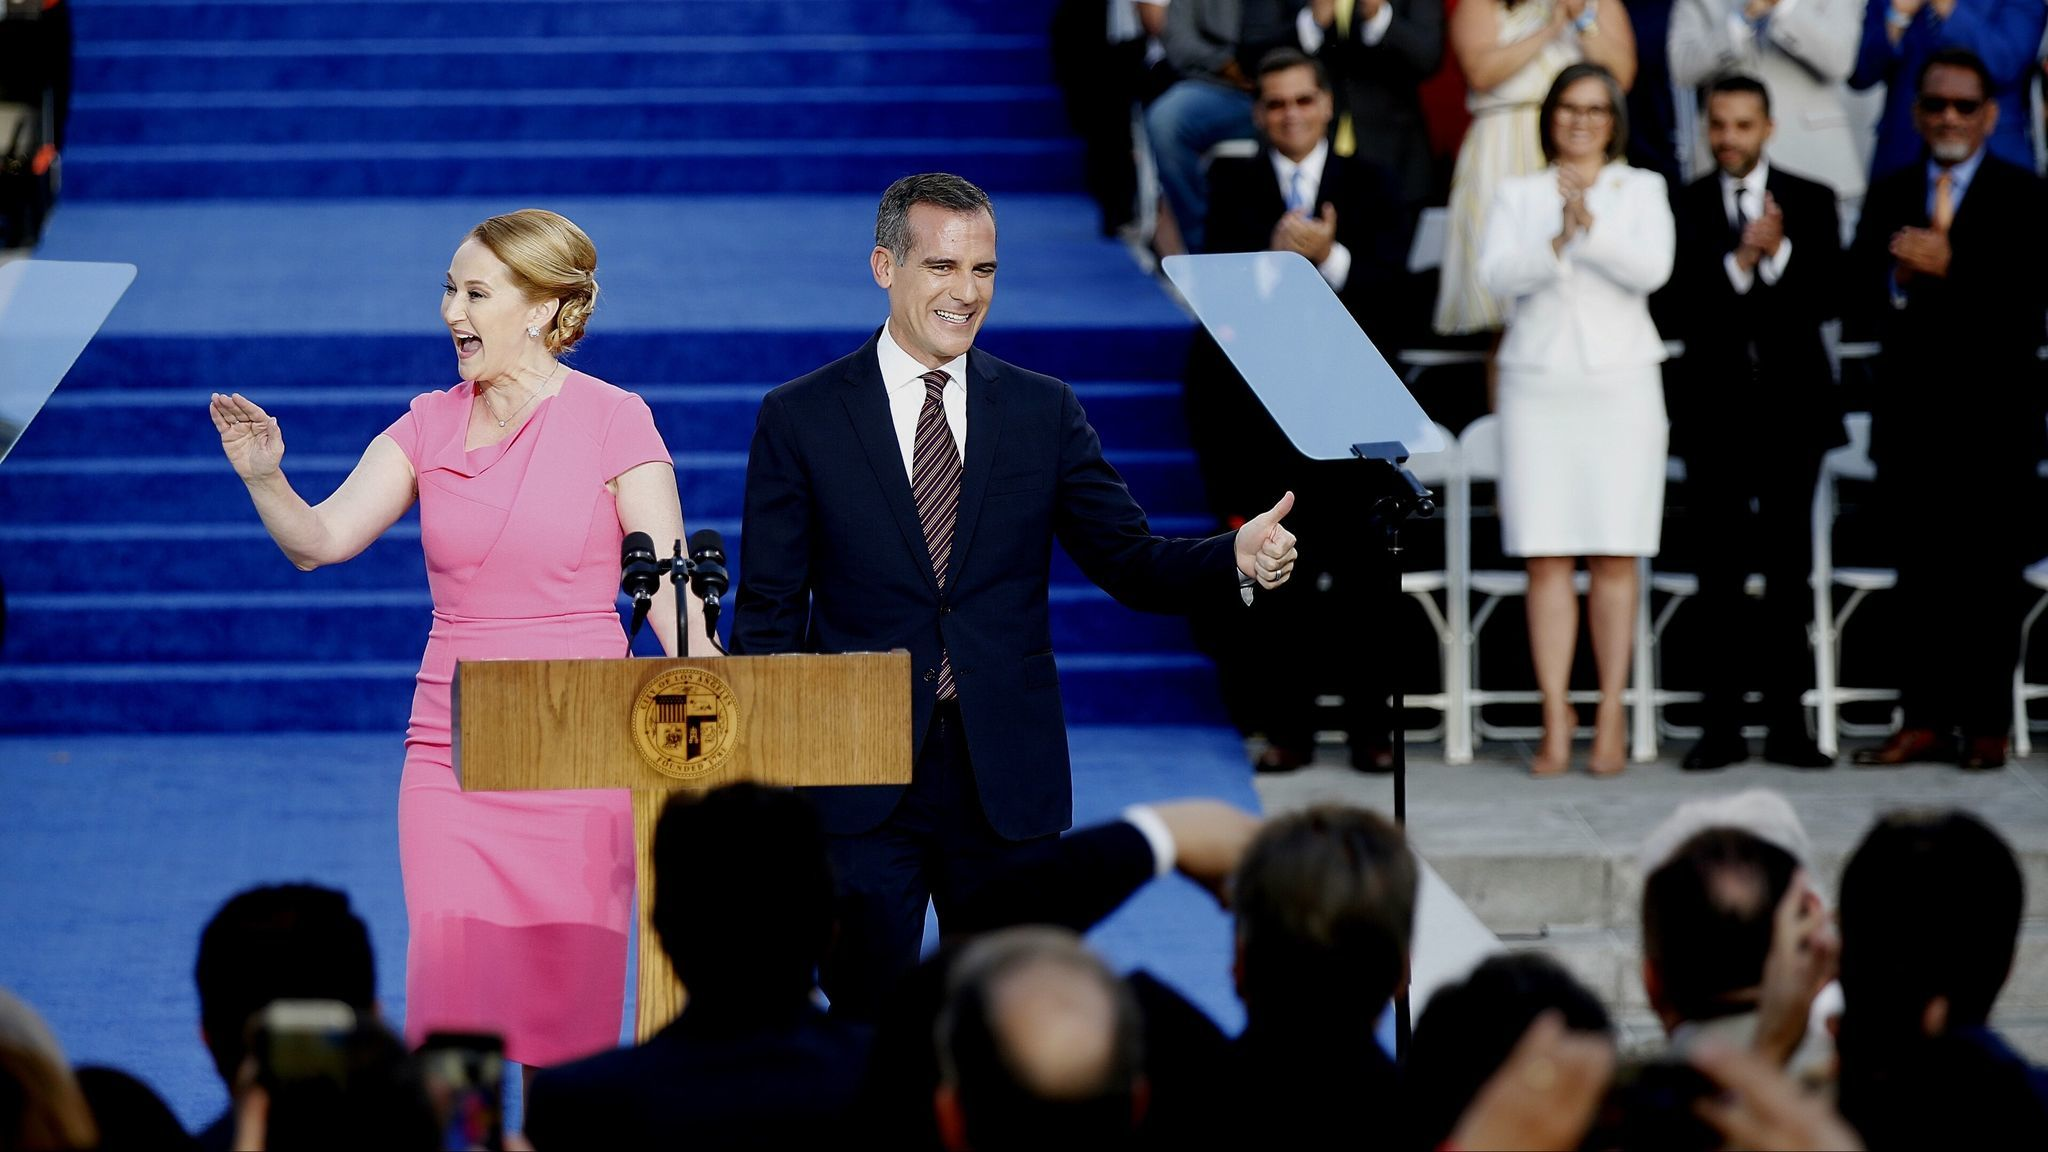 Mayor Eric Garcetti, right, shown with his wife Amy Wakeland, before being sworn in for his second t